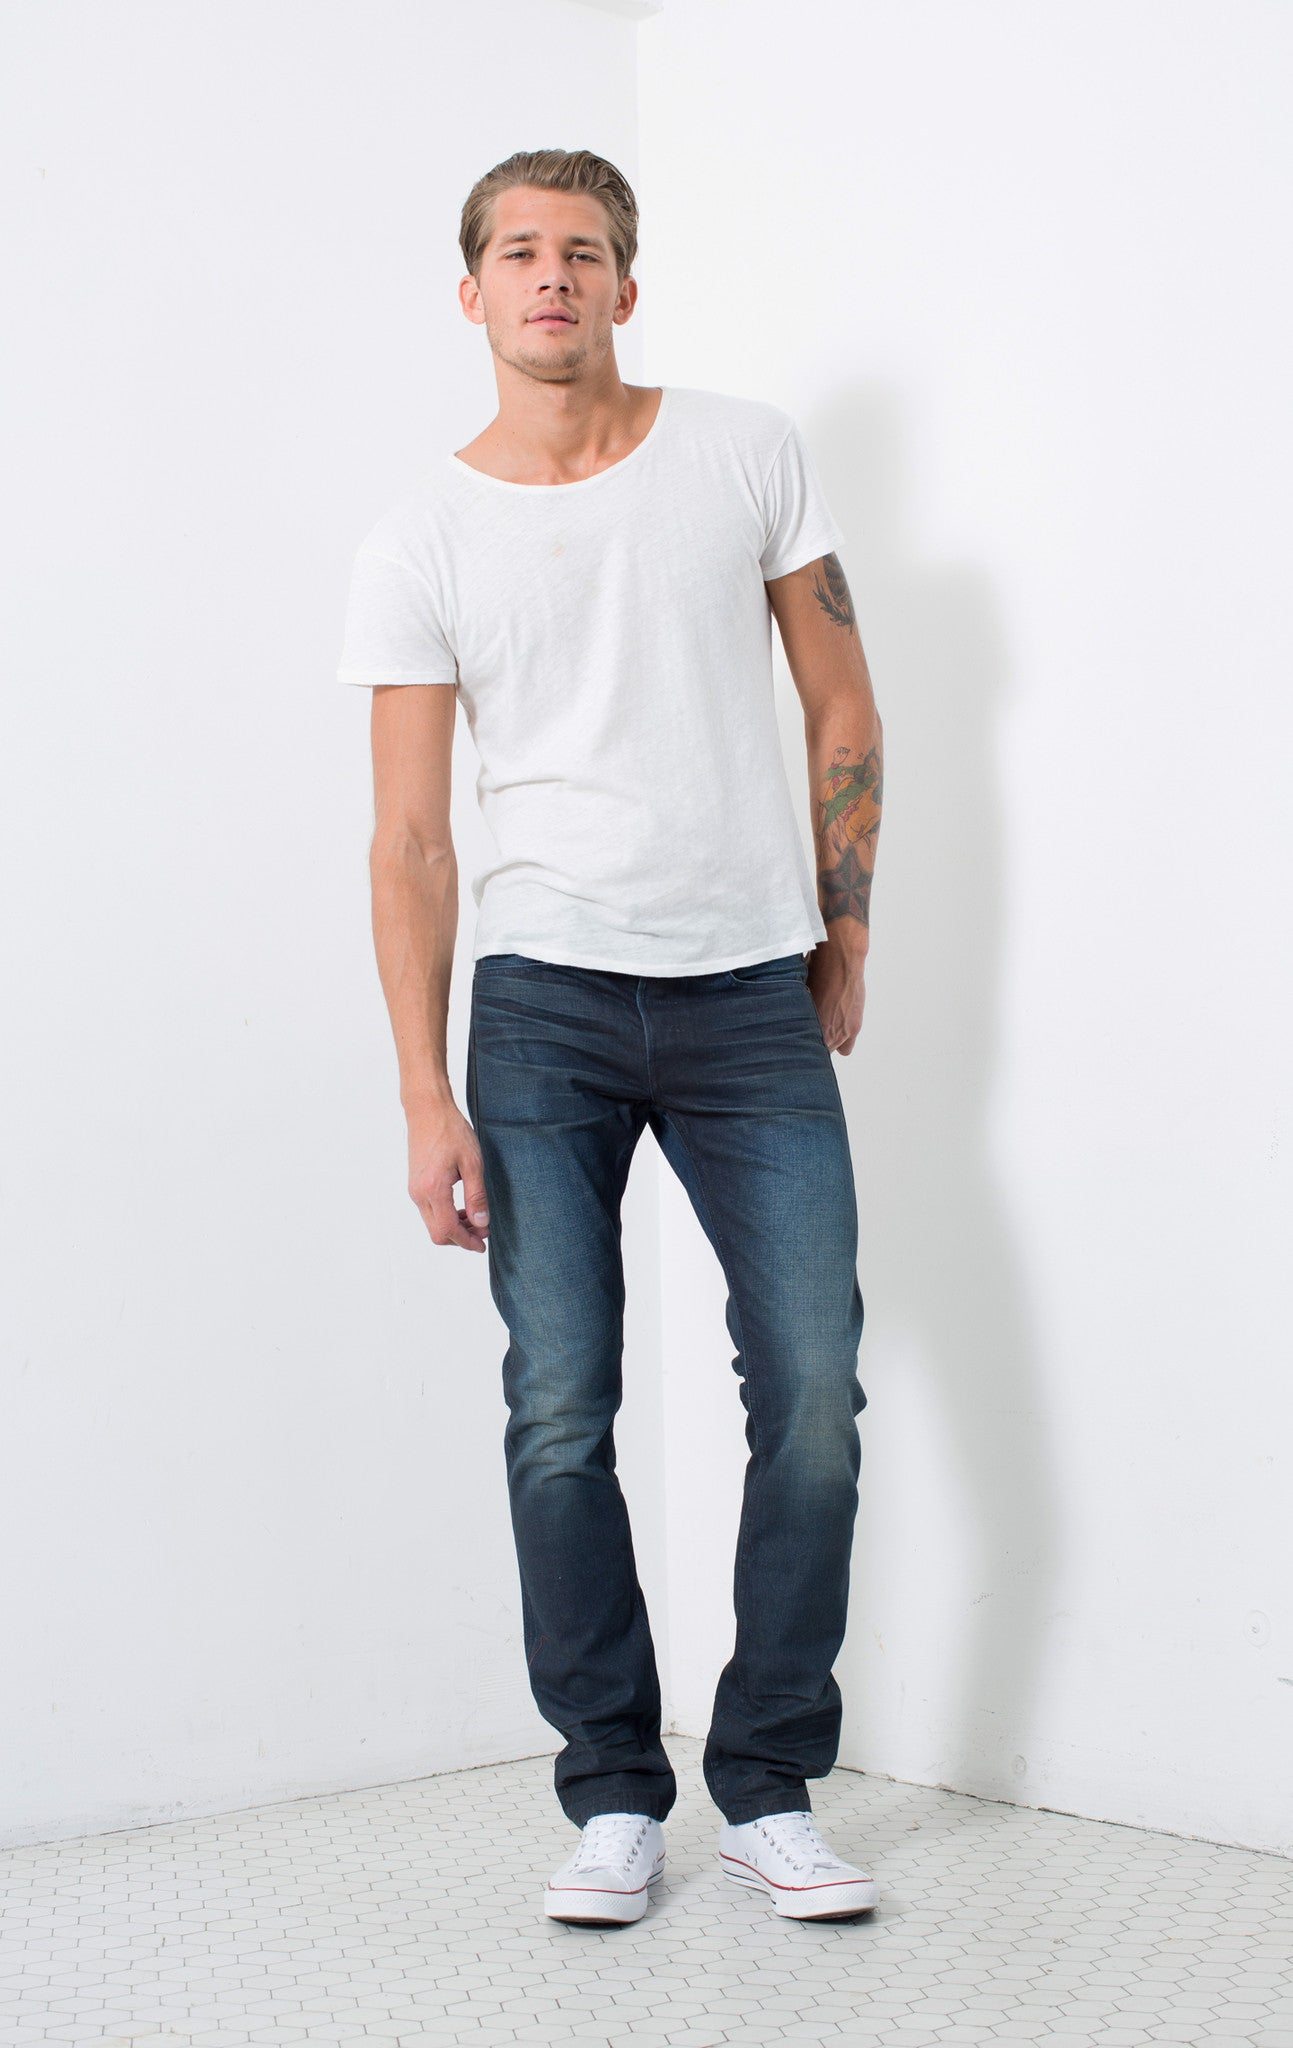 SLIM SELVAGE FIT in JUDE | MADE TO ORDER